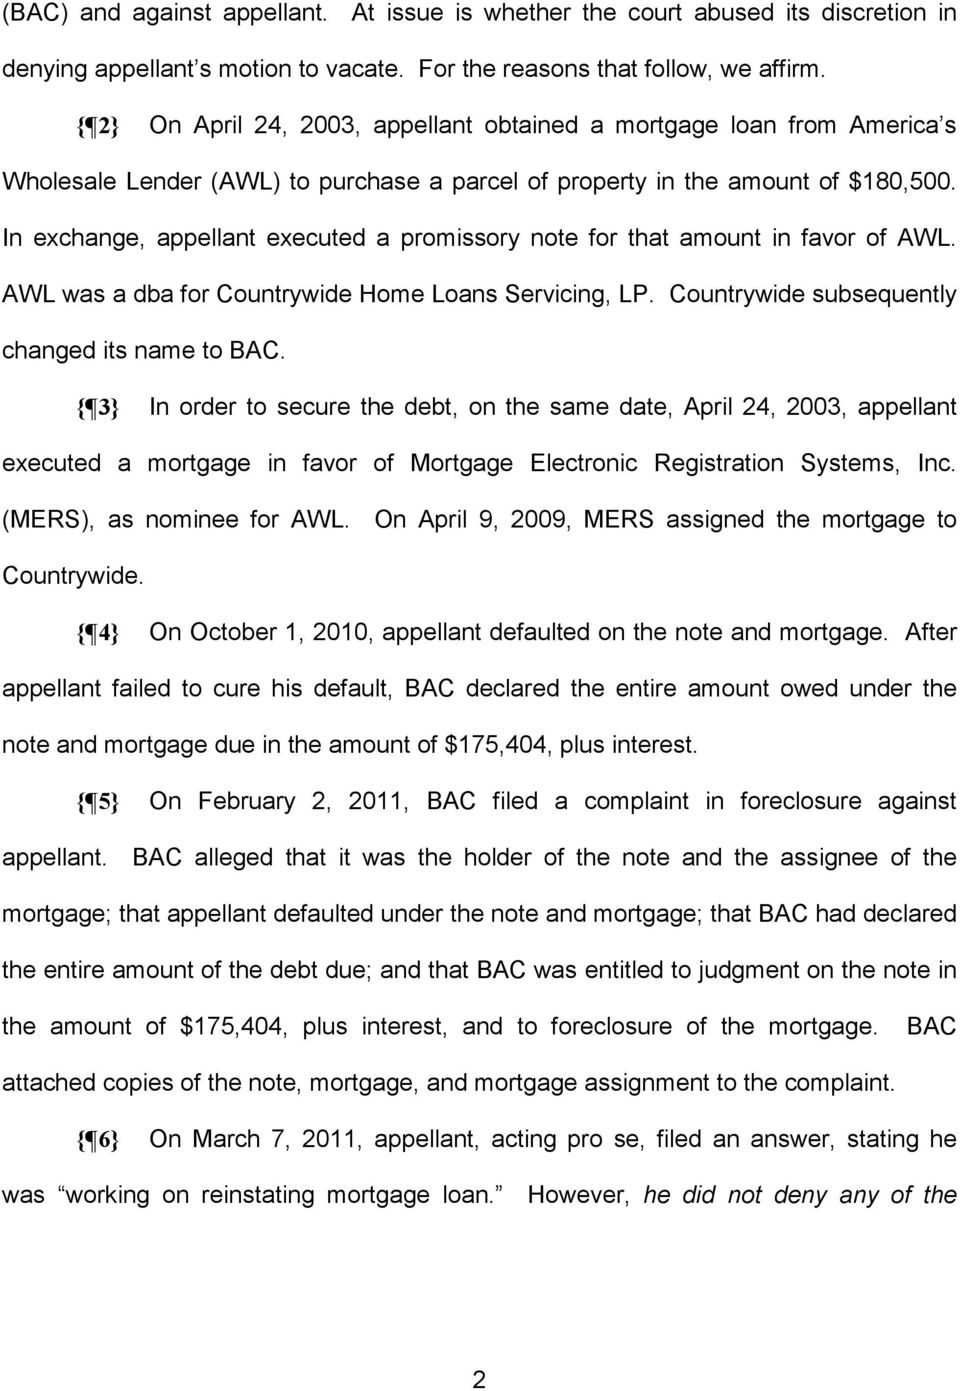 In exchange, appellant executed a promissory note for that amount in favor of AWL. AWL was a dba for Countrywide Home Loans Servicing, LP. Countrywide subsequently changed its name to BAC.